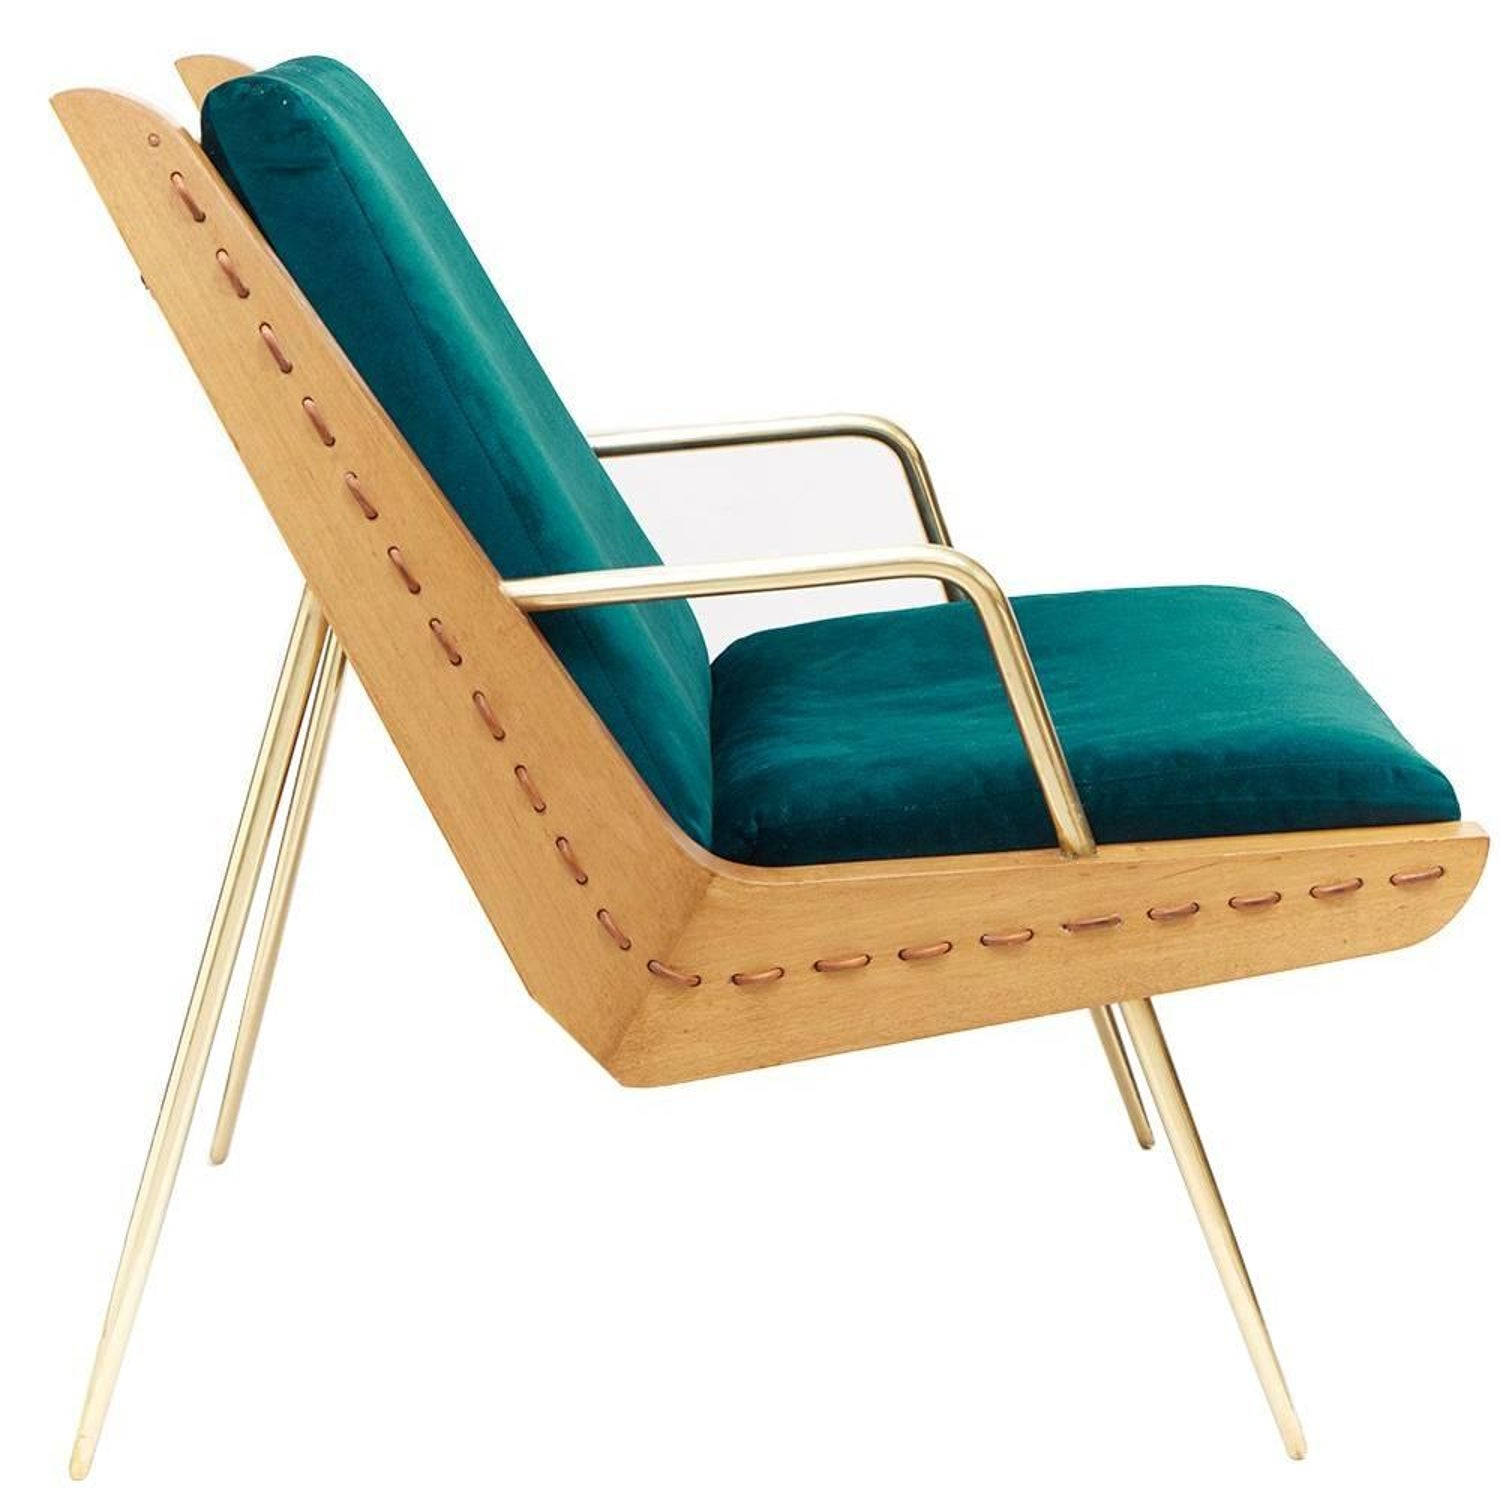 Mexican Lounge Chairs 59 For Sale At 1stdibs # Muebles Only Cali